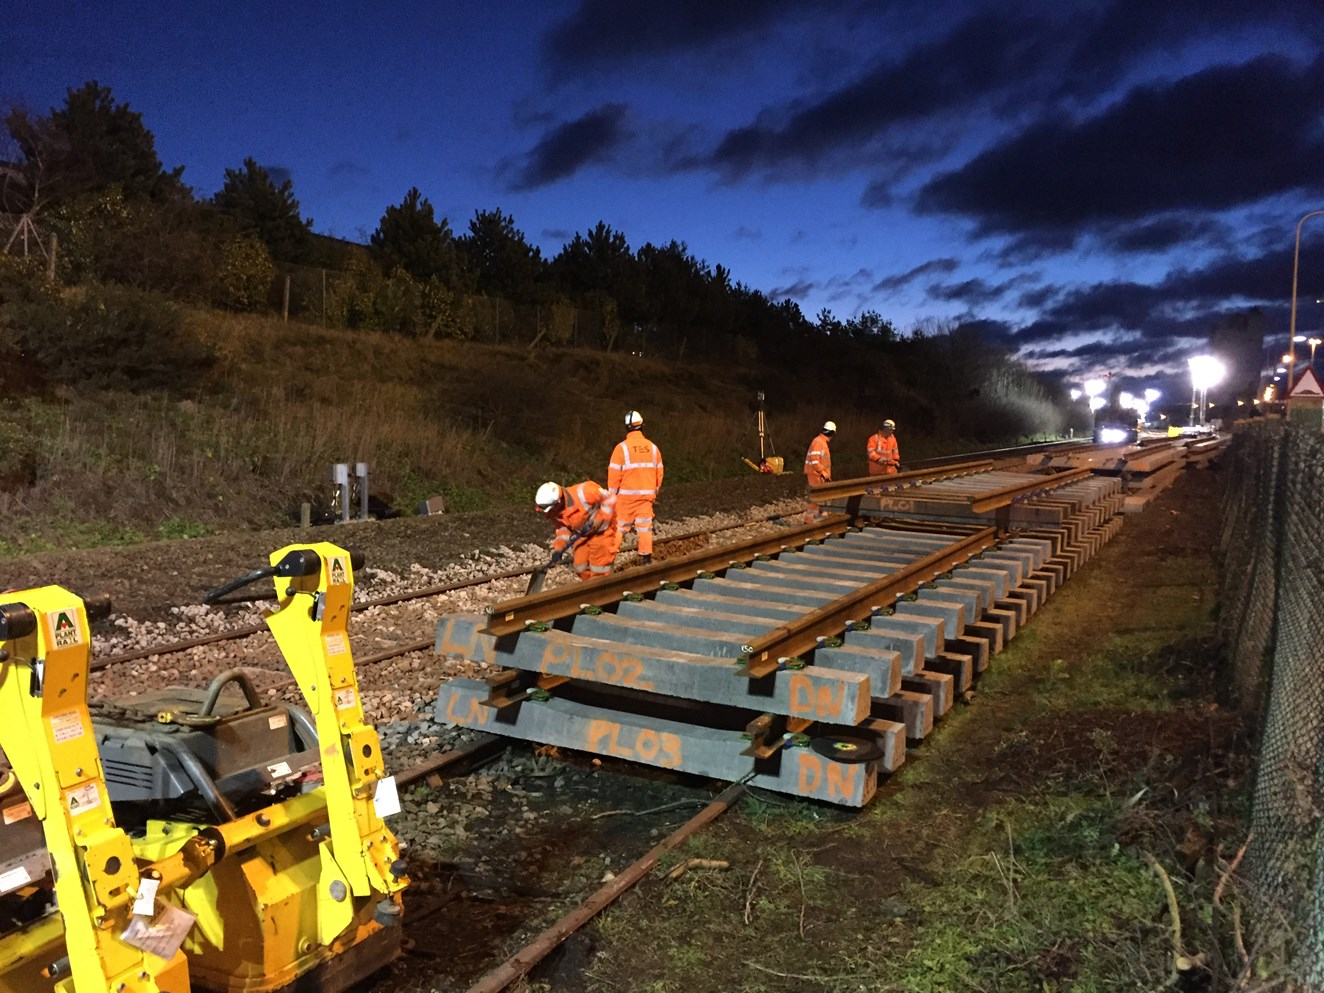 Transformation of Wherry lines continues with autumn works at Reedham junction: NYL New track panels ready for install